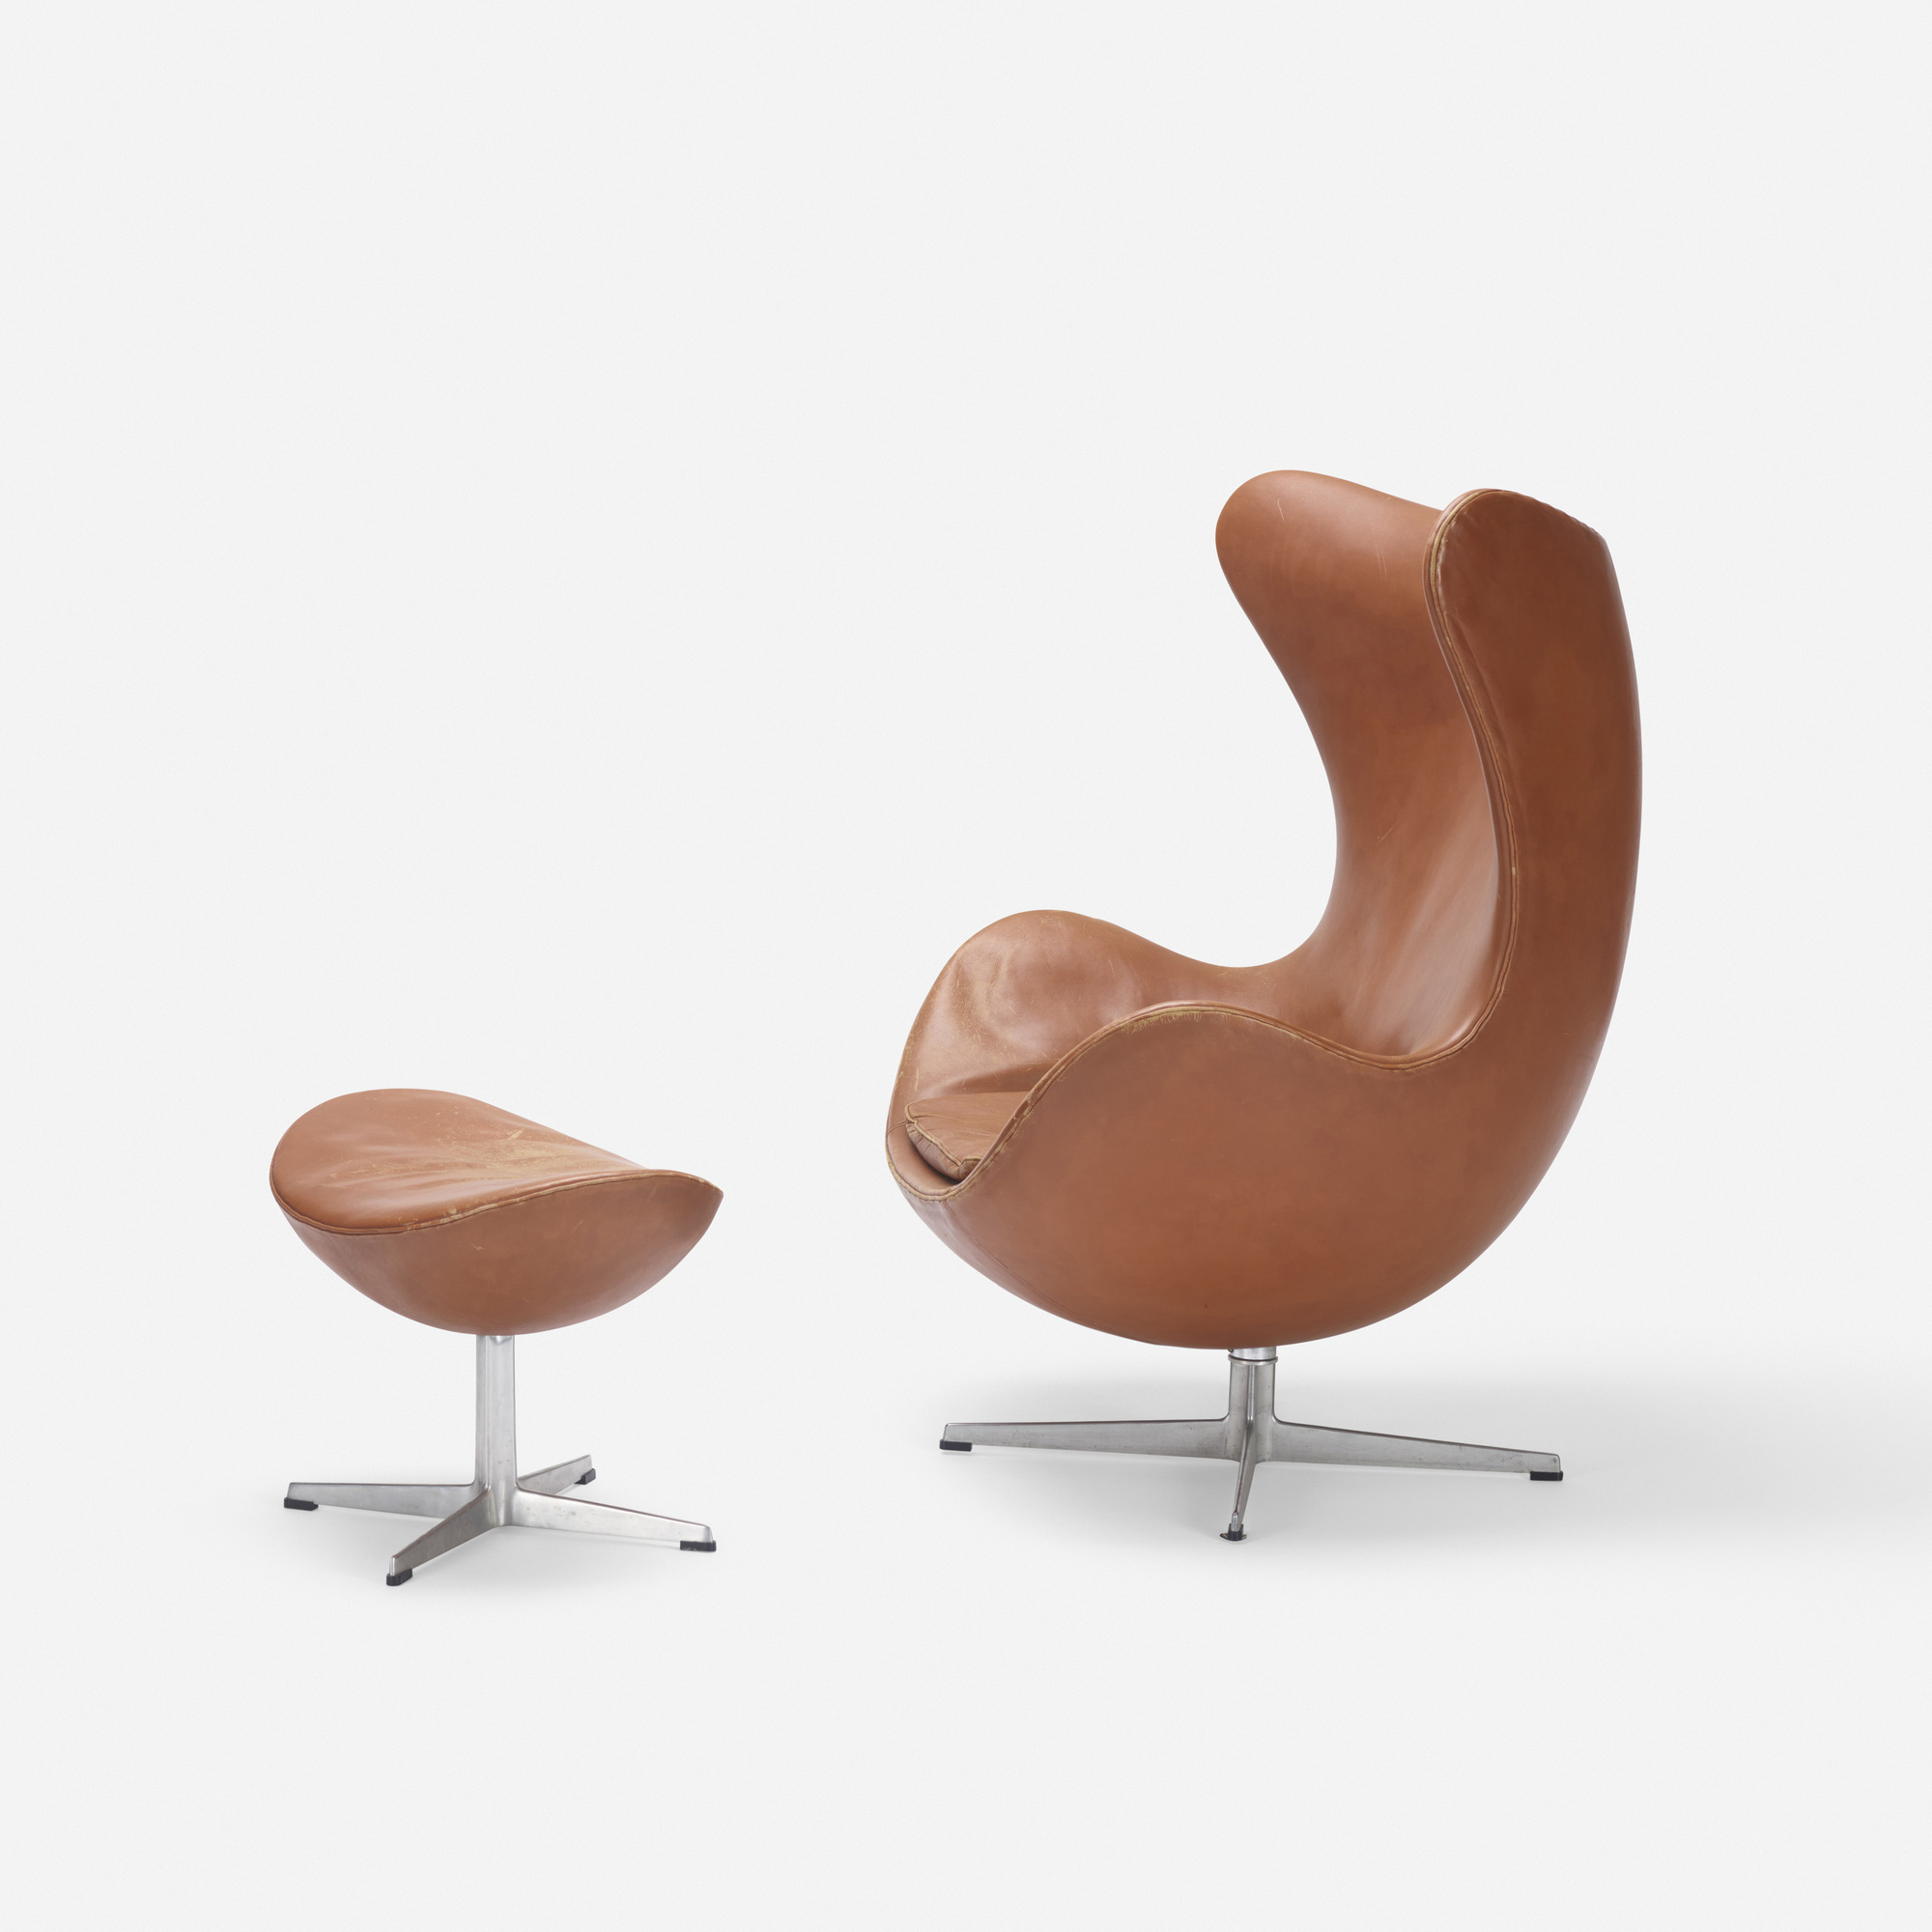 home on chair jacobsen gallery egg remodeling with craigslist interior arne brilliant for design